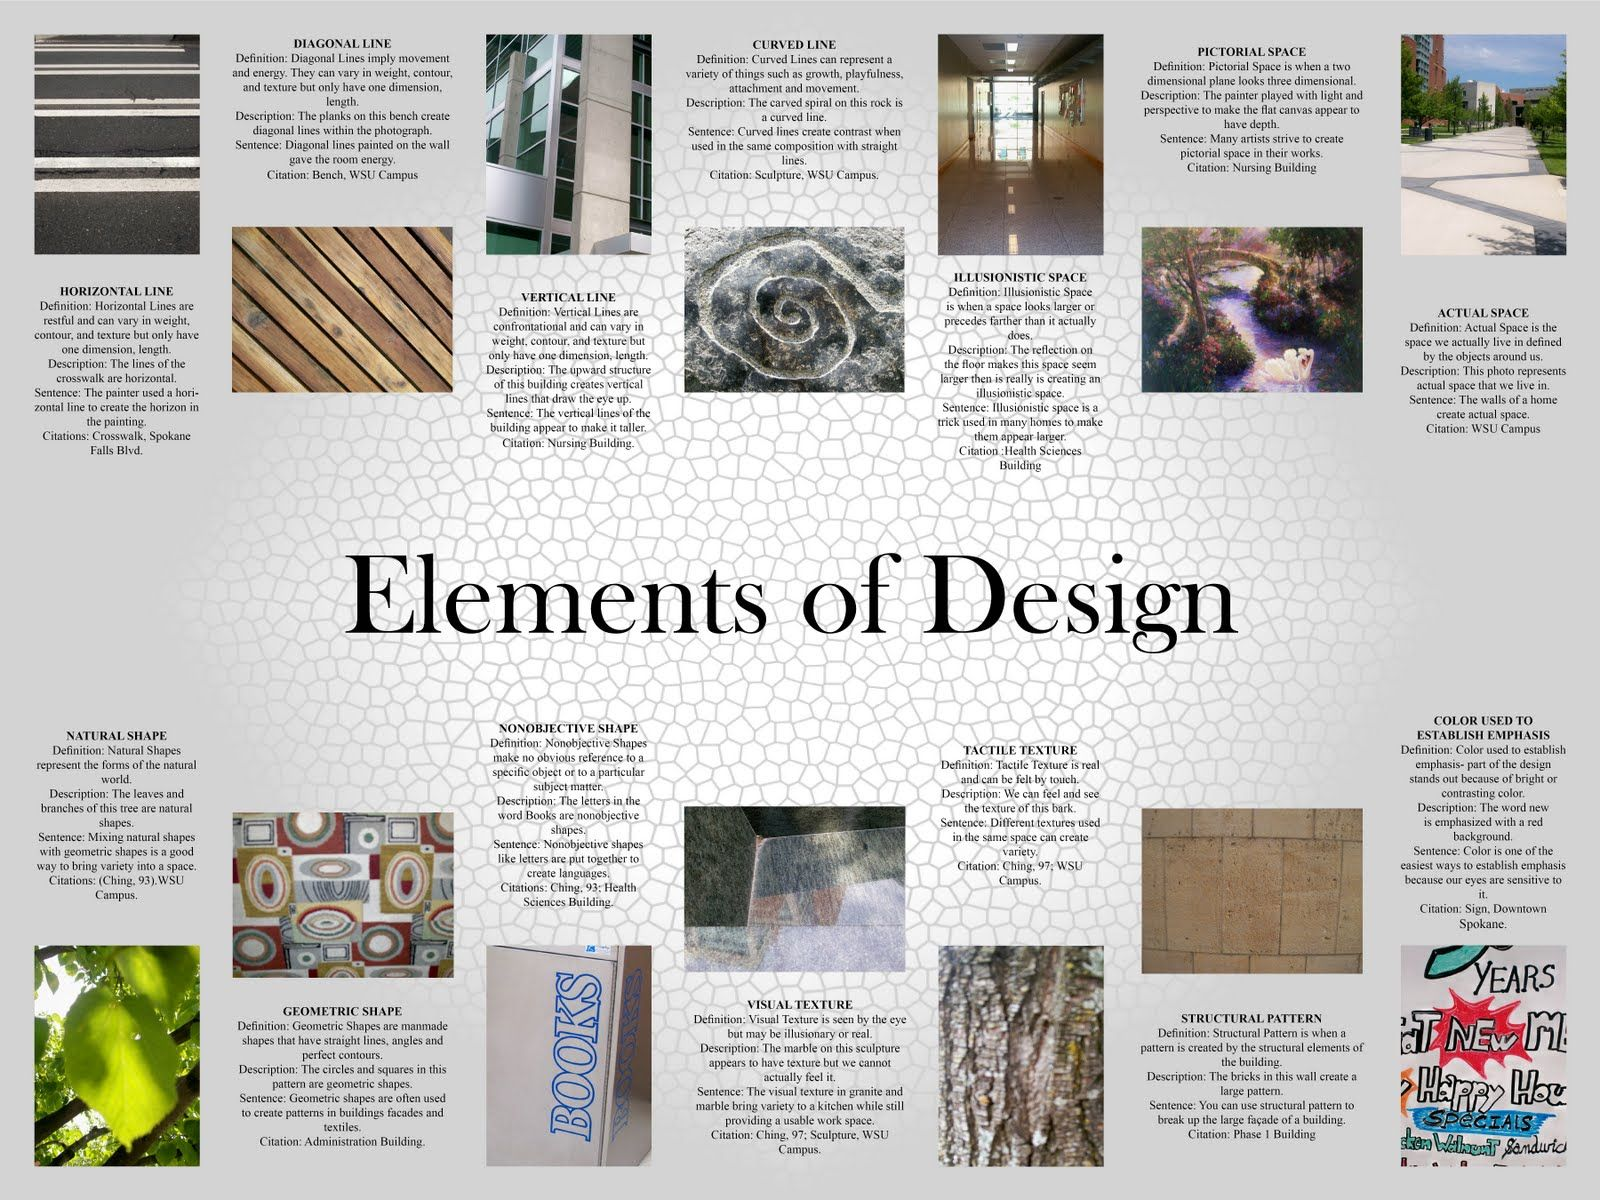 elements and principles of design in fashion photography - Google Search